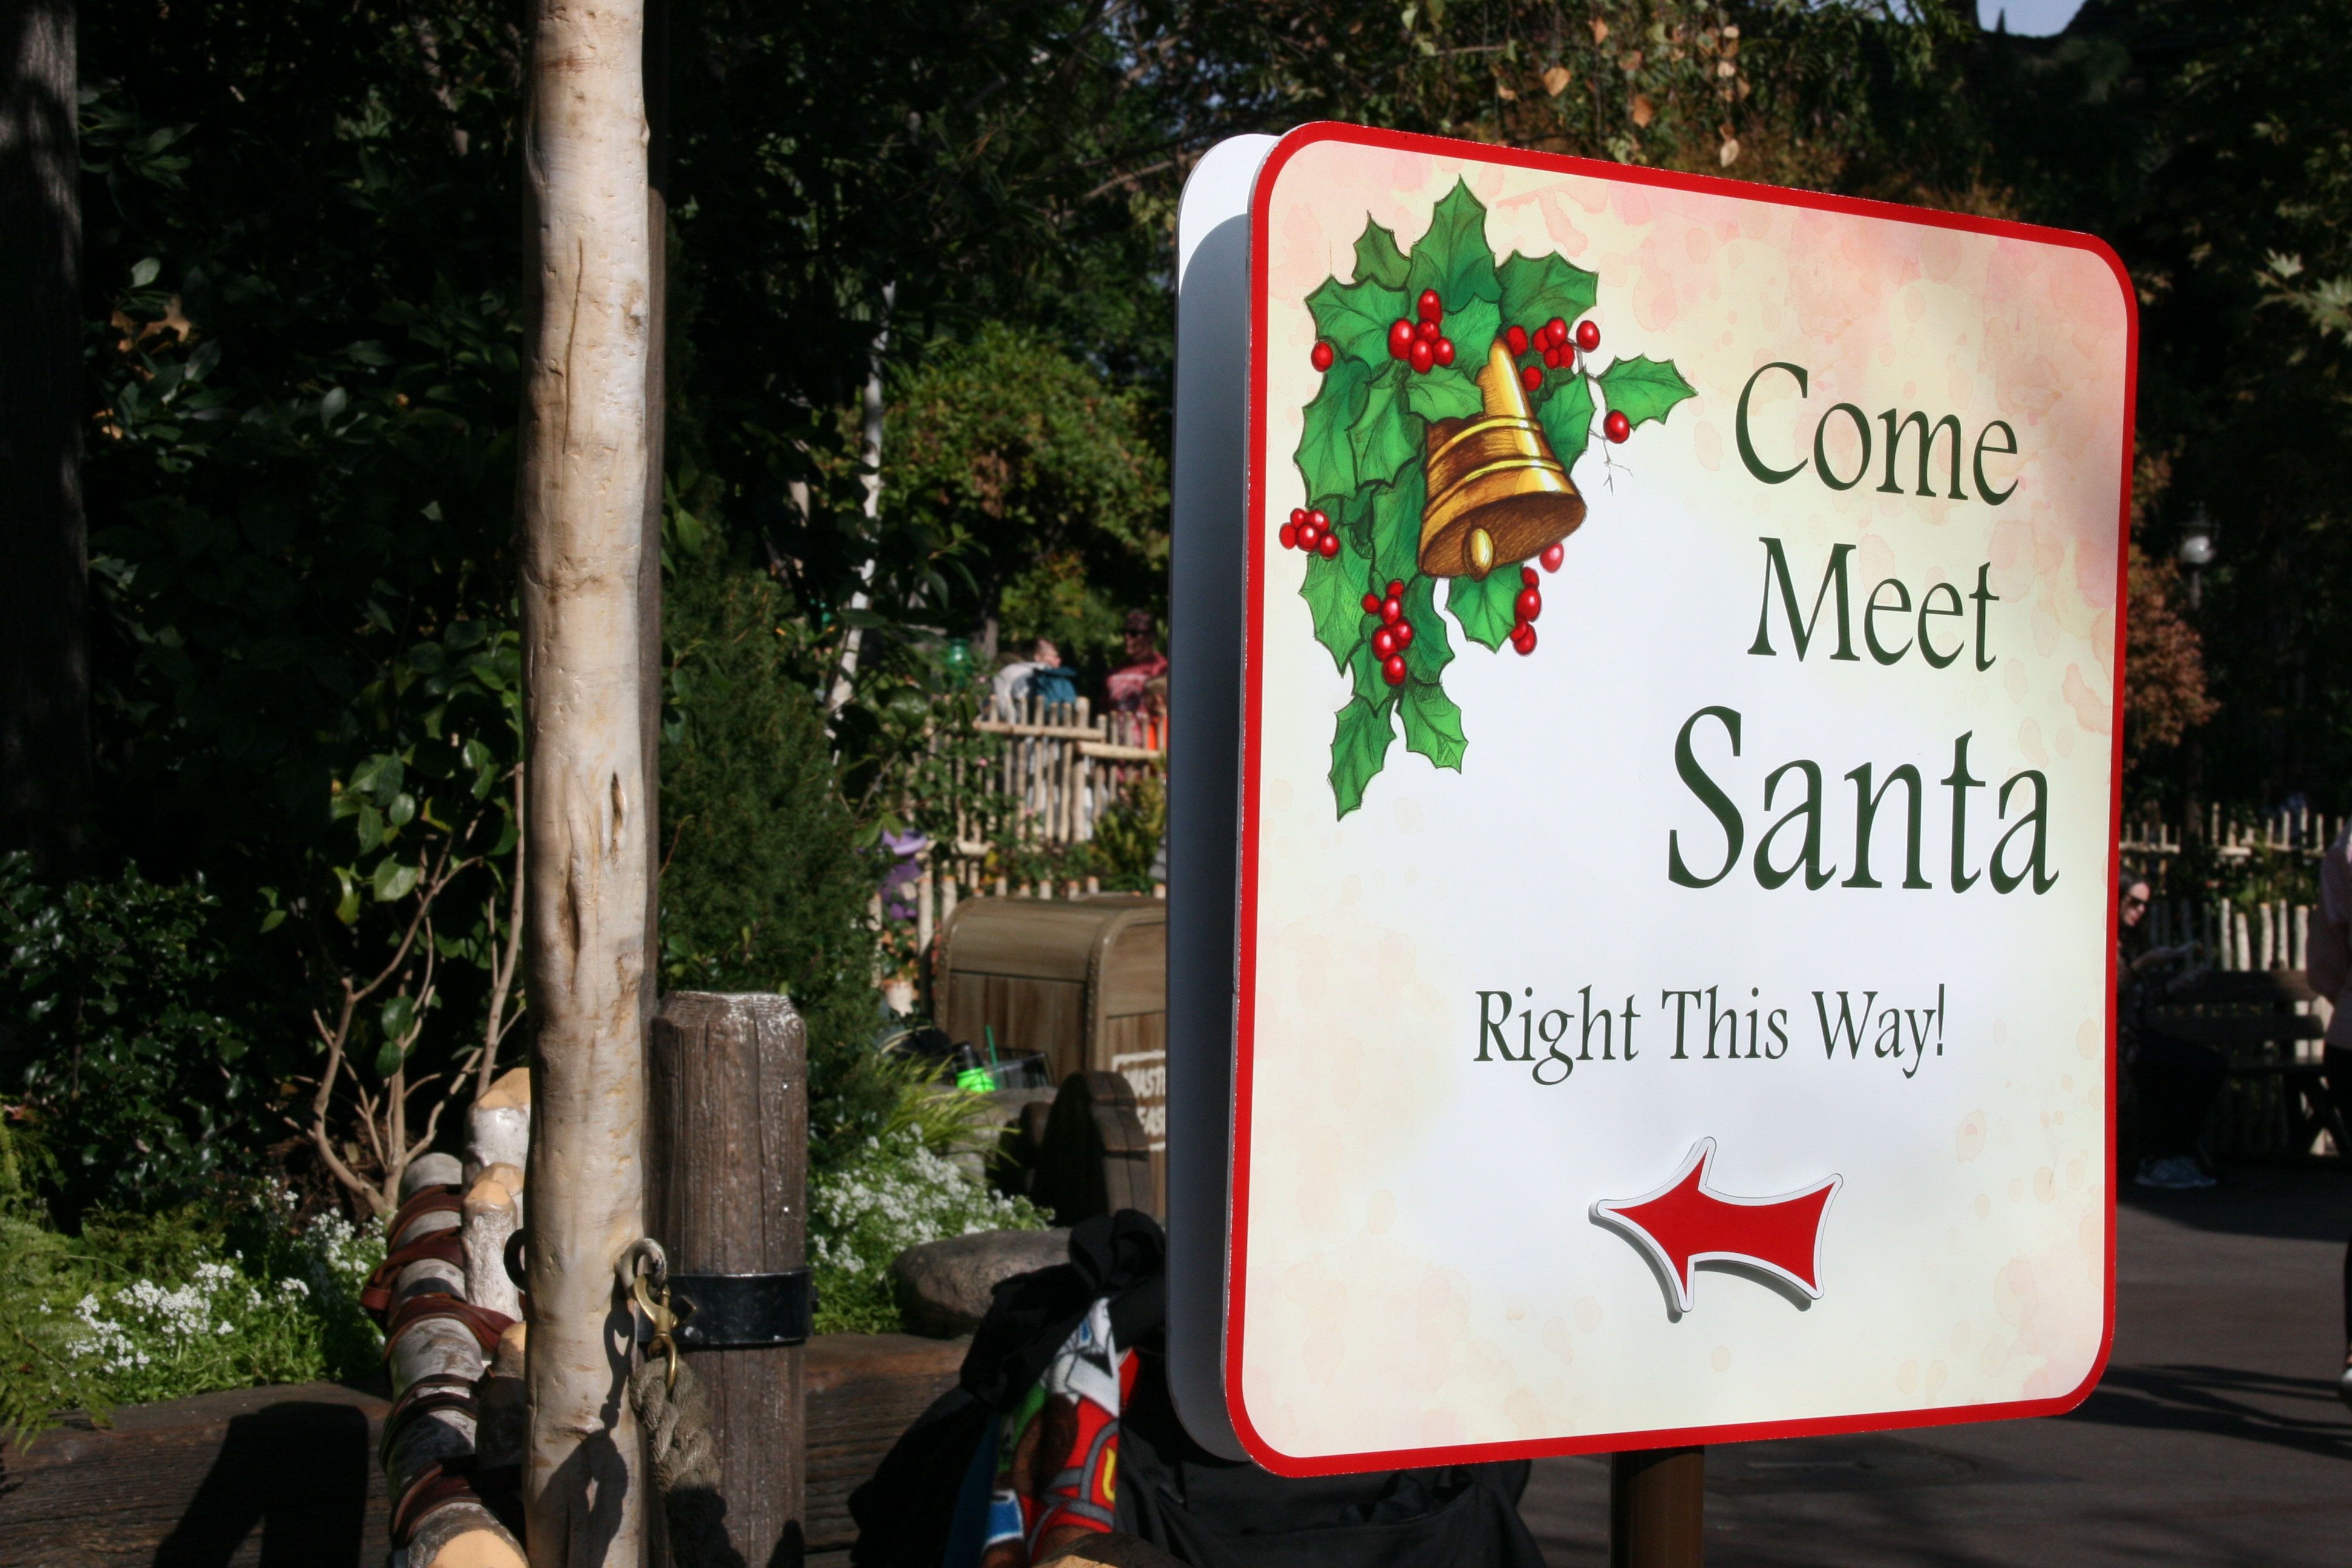 Frontierland Santa Claus sign at Disneyland